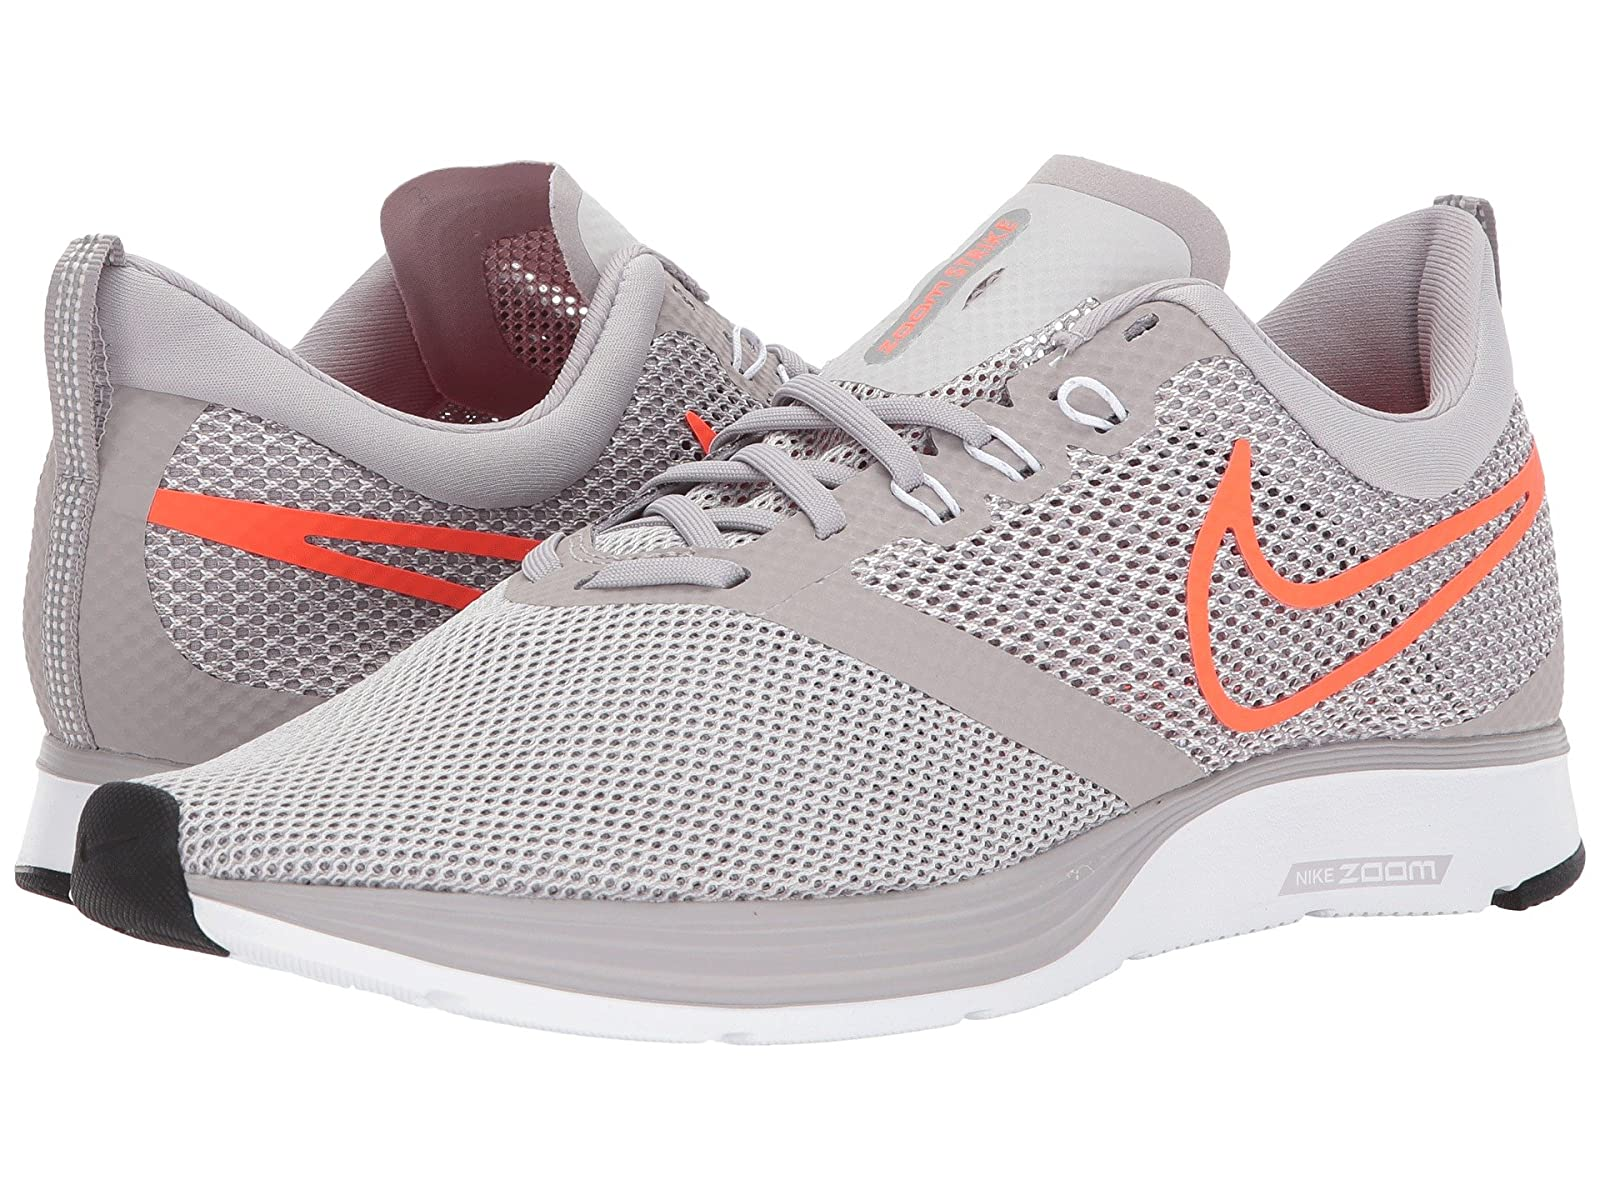 Nike Zoom StrikeCheap and distinctive eye-catching shoes